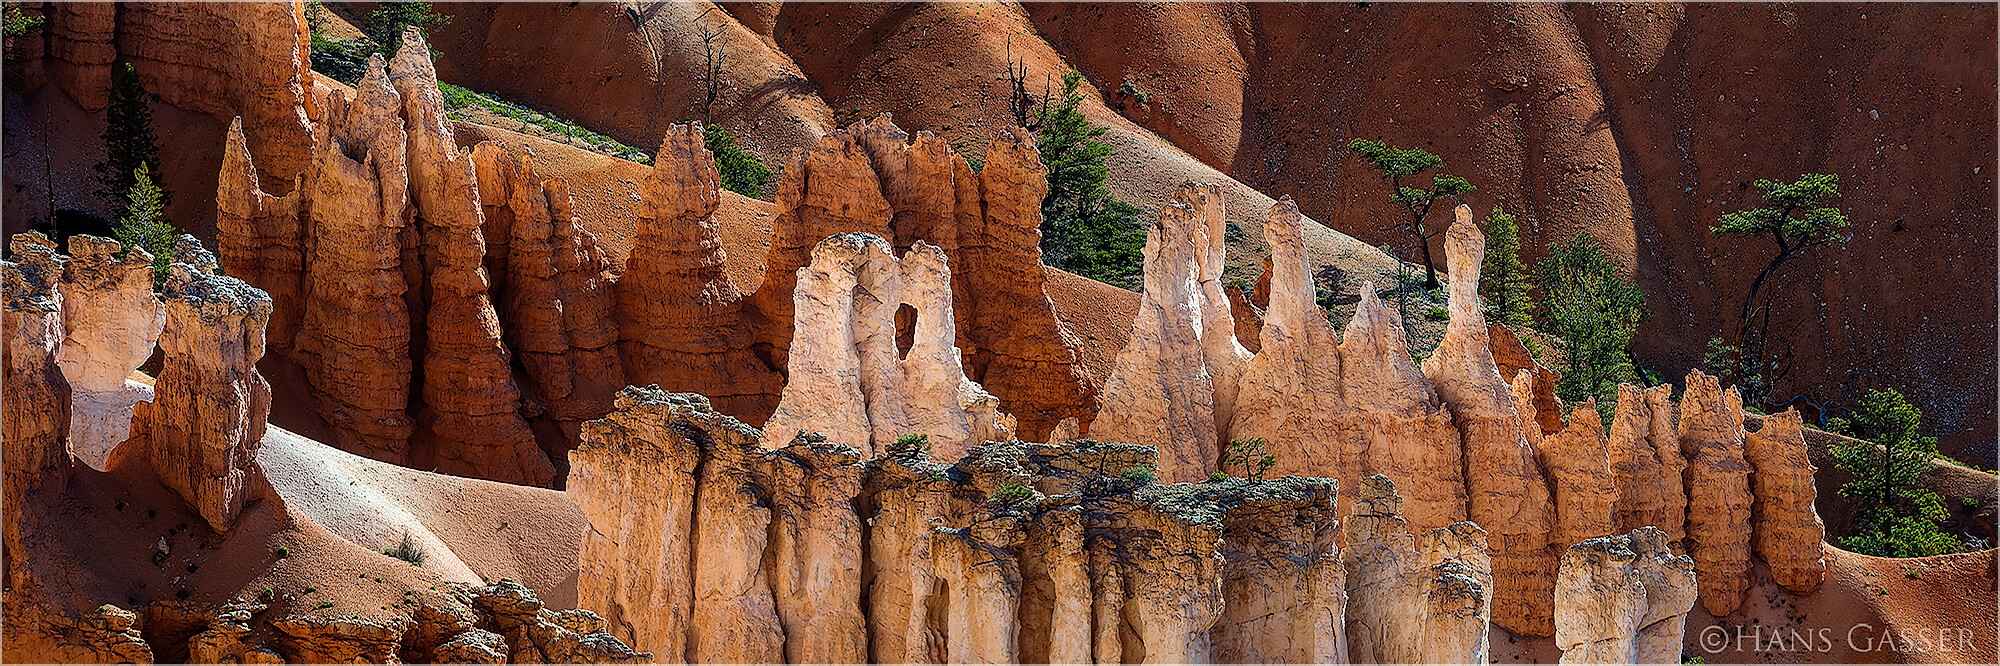 Panoramafoto Bryce Canyon National Park Utah USA